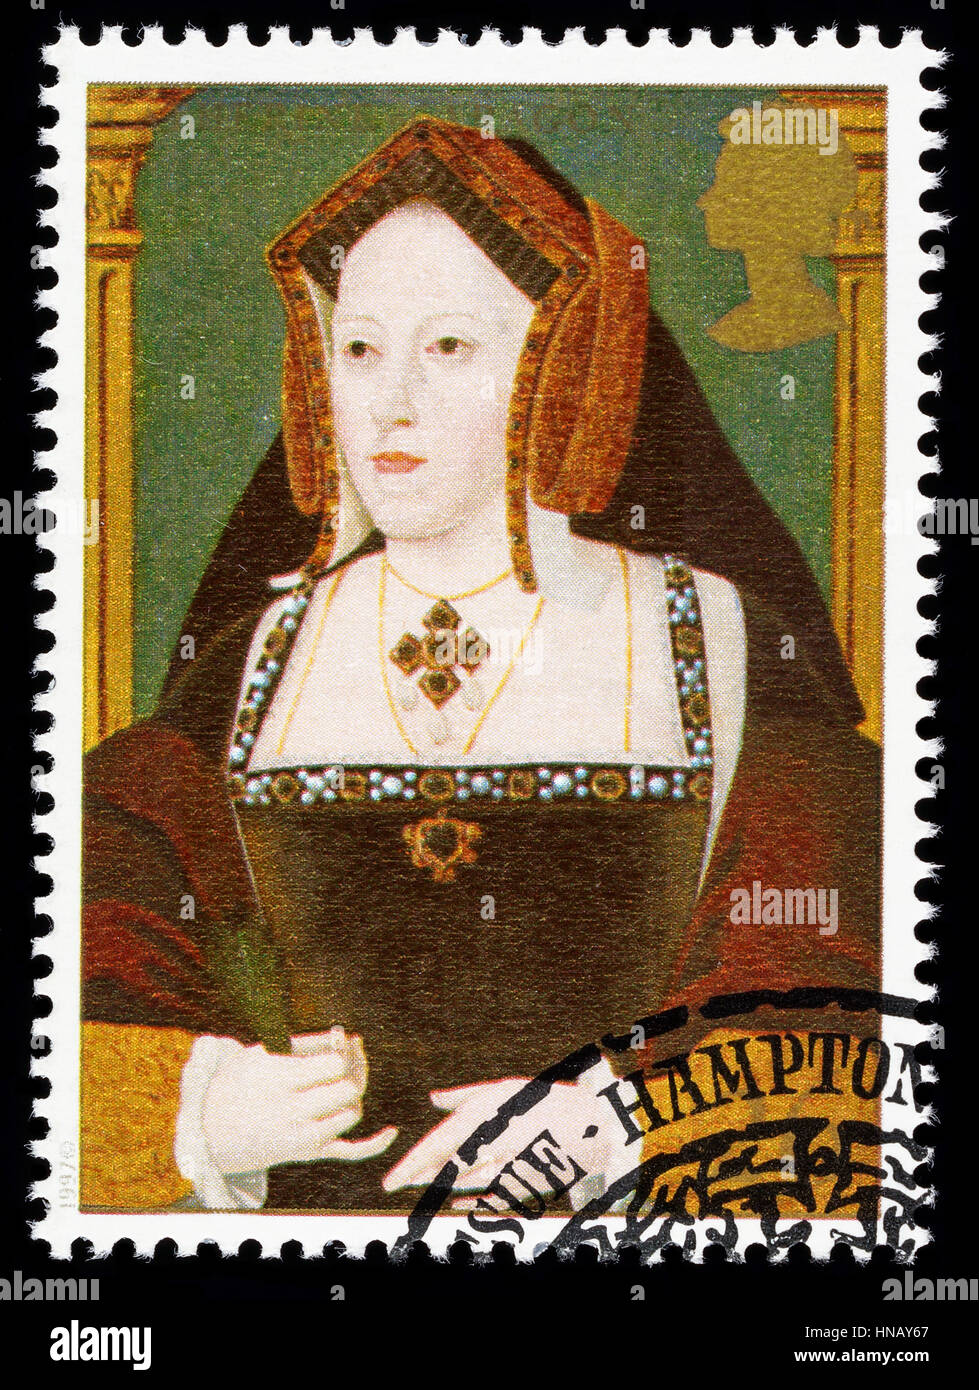 UNITED KINGDOM - CIRCA 1997: used postage stamp printed in Britain commemorating King Henry 8th showing Catherine - Stock Image